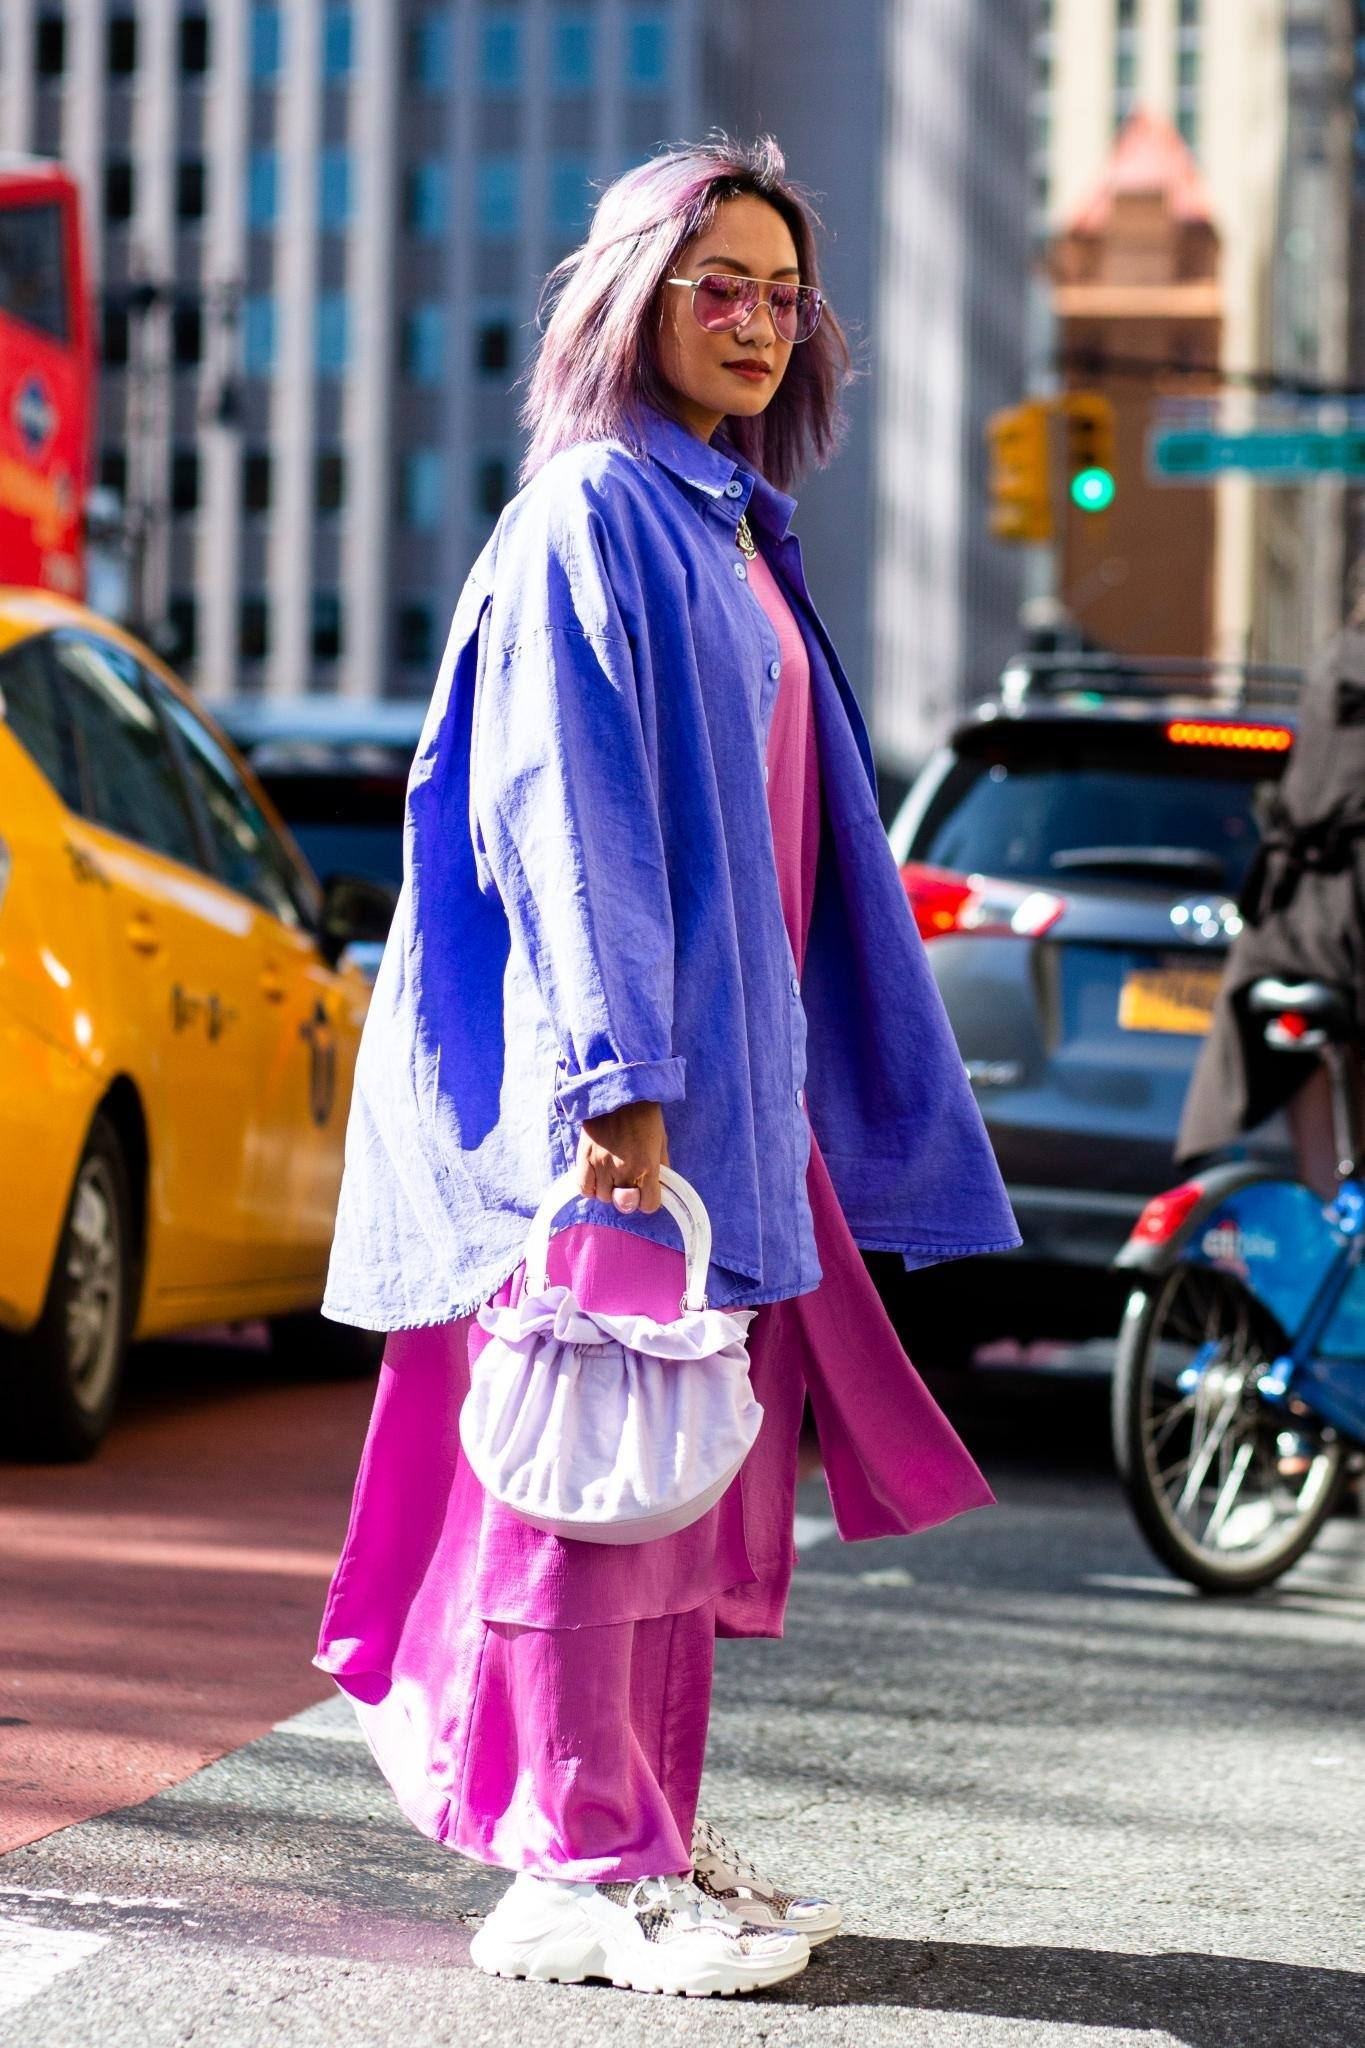 Laureen Uy with purple hair wearing a blue jacket and pink dress shot street style at NYFW SS 2020